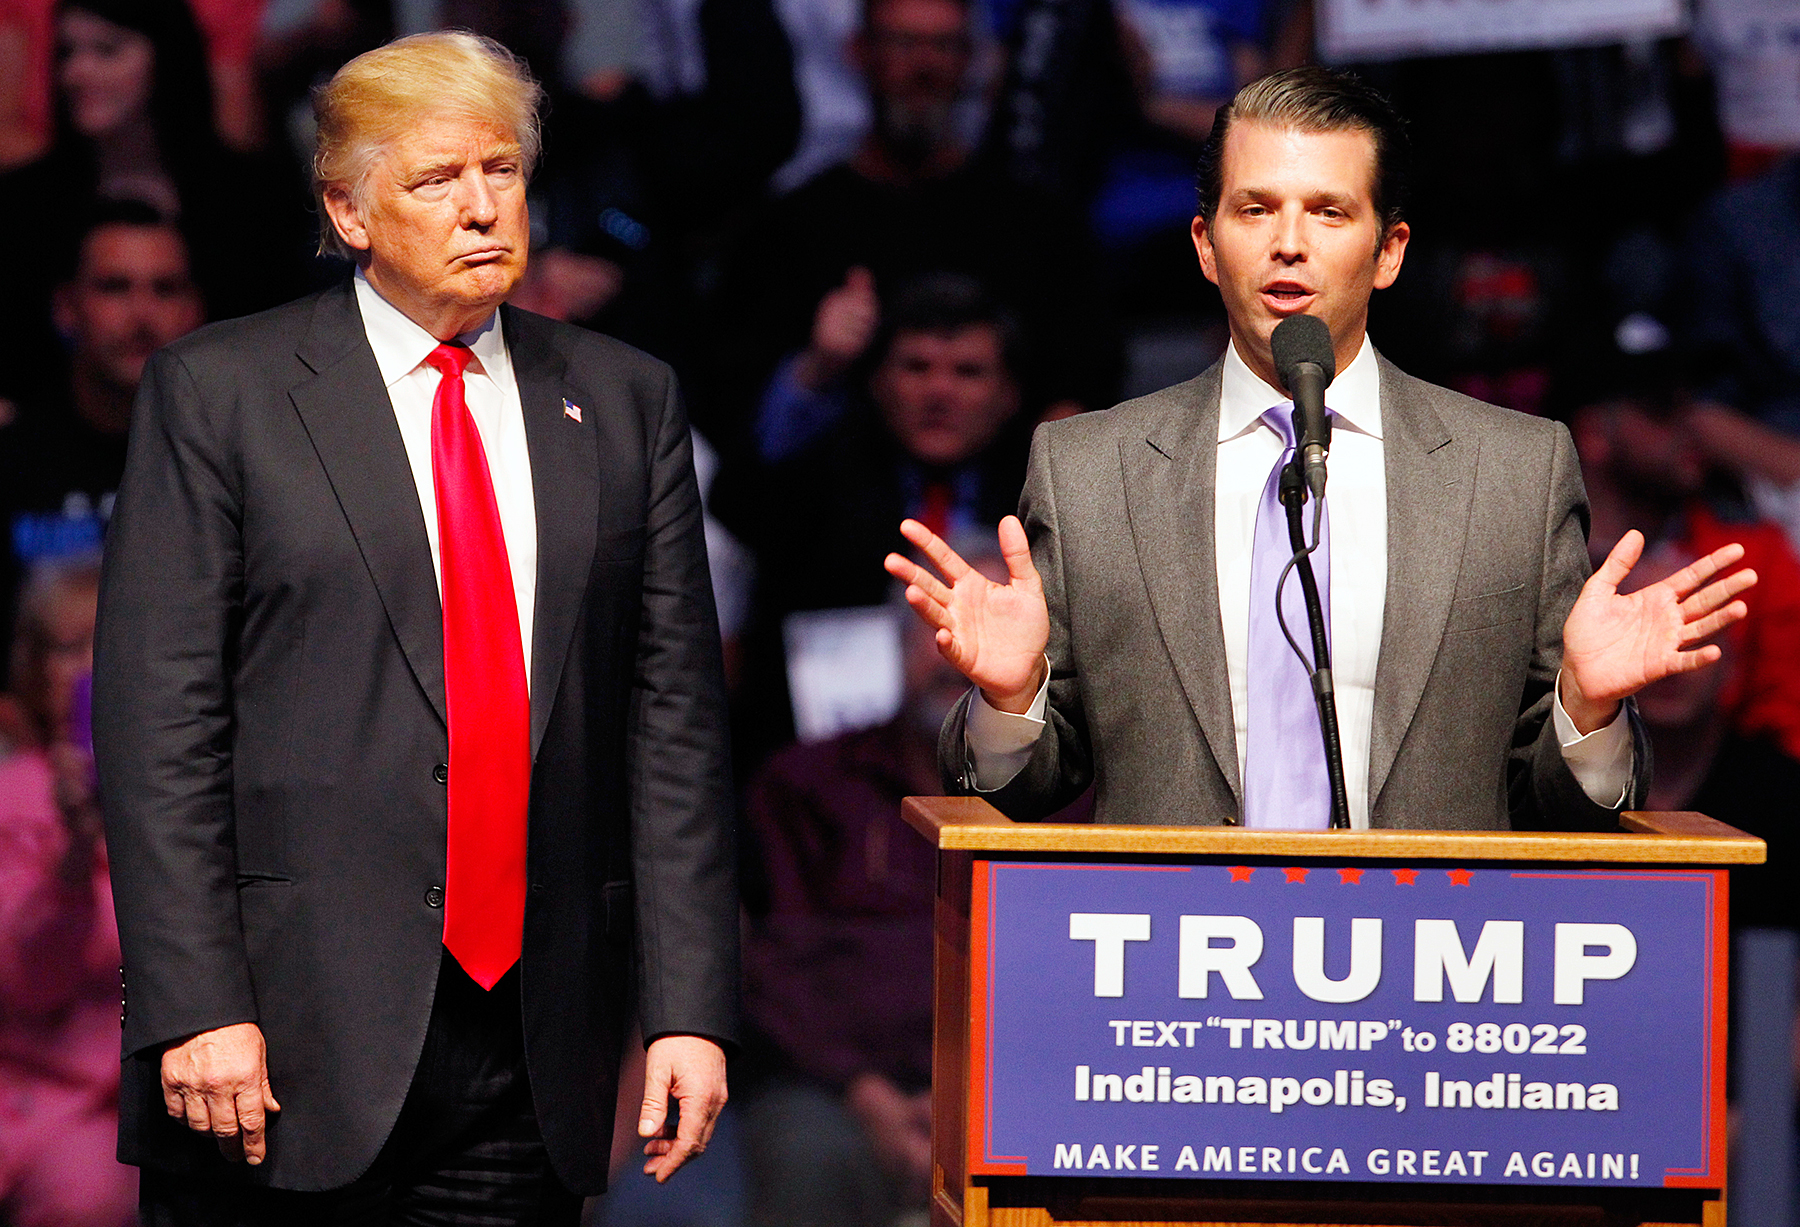 Here's what that suspicious letter sent to Don Jr. reportedly said